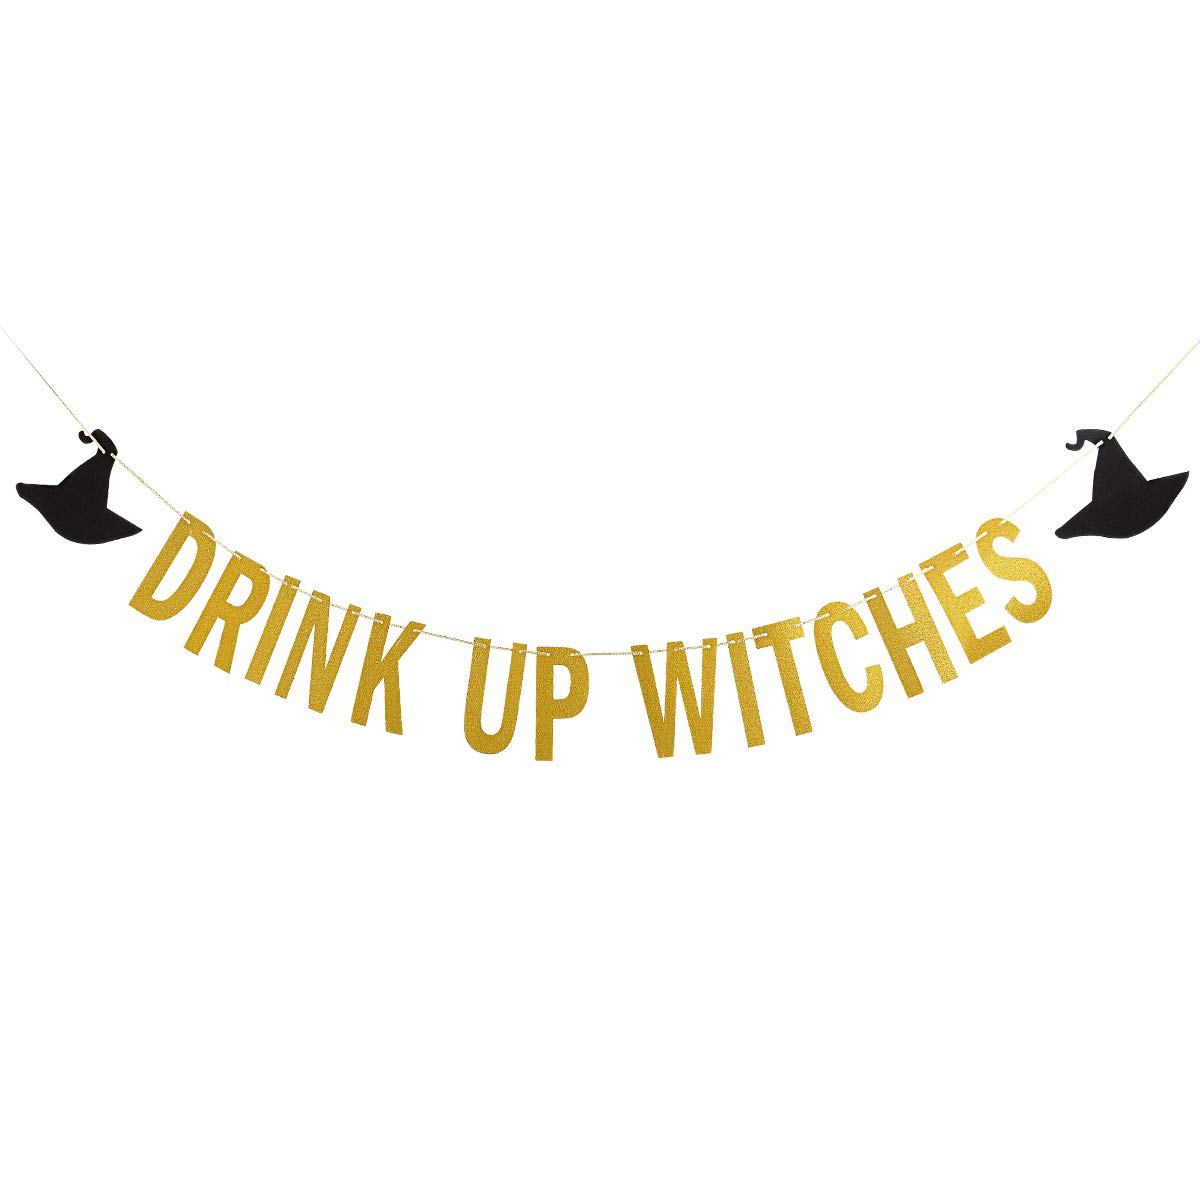 Gold Glittery Drink Up Witches Banner -Halloween Party Decoration Supplies